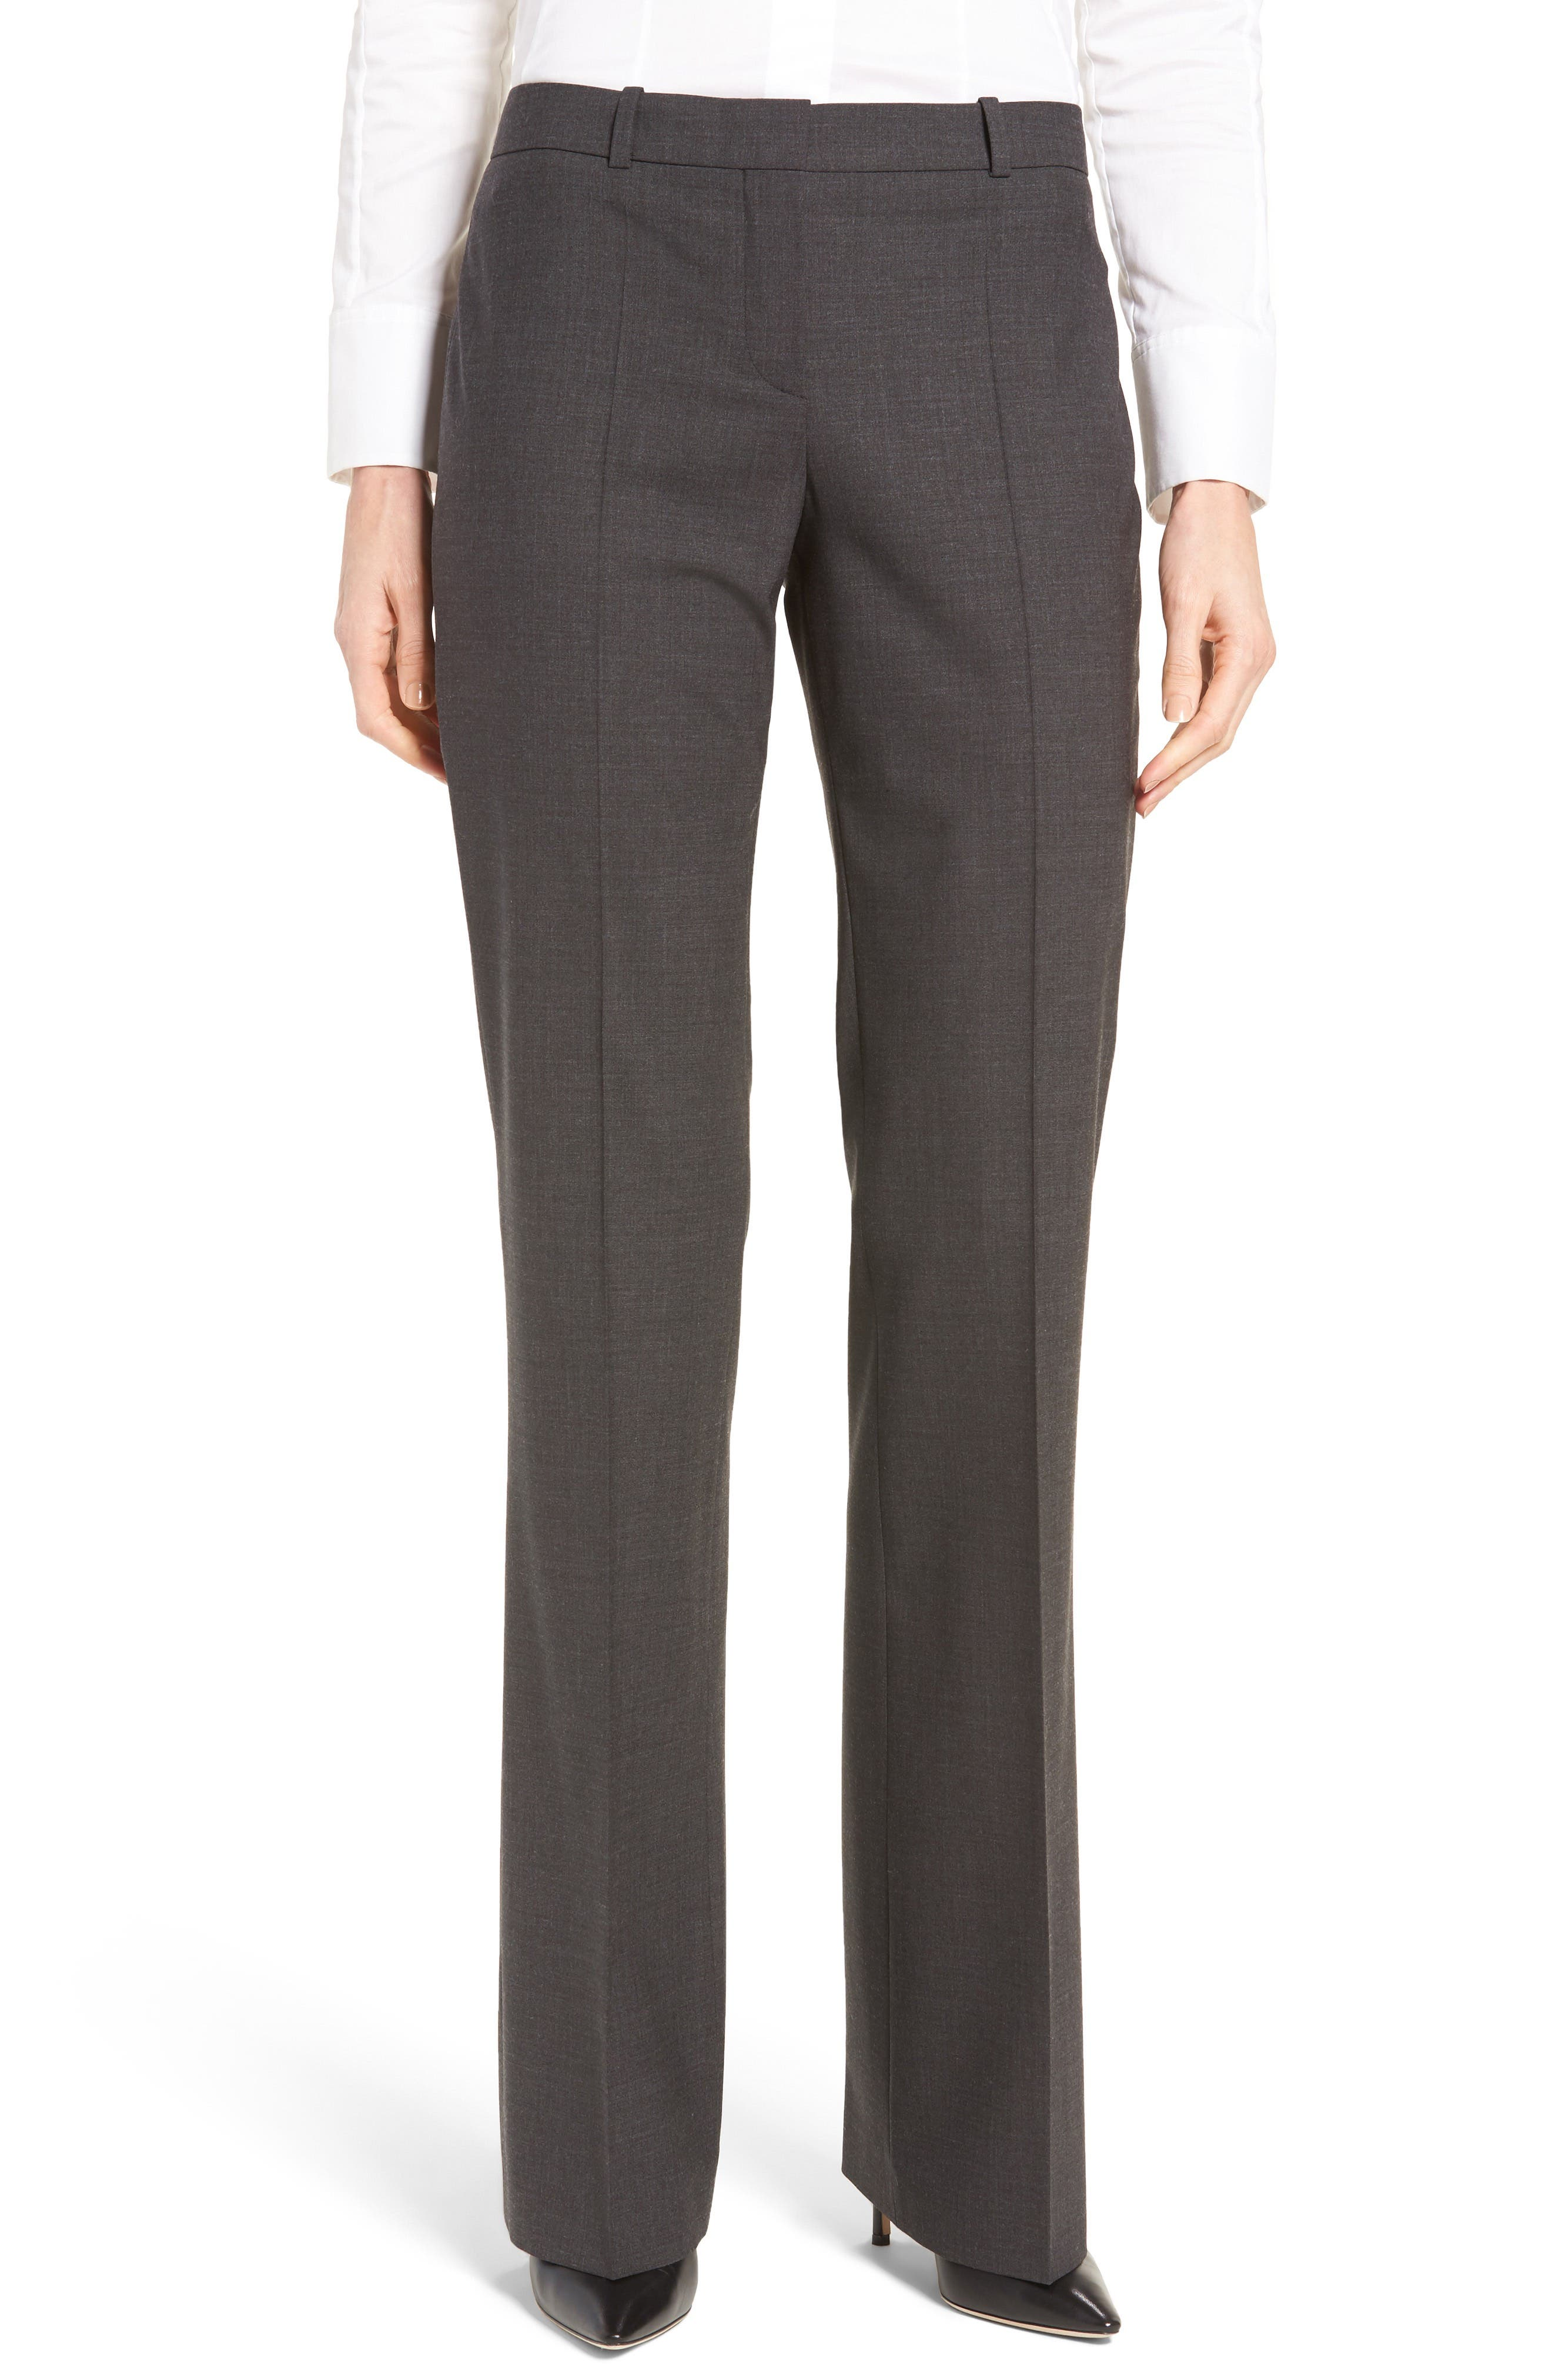 BOSS, Tulea3 Tropical Stretch Wool Trousers, Main thumbnail 1, color, CHARCOAL